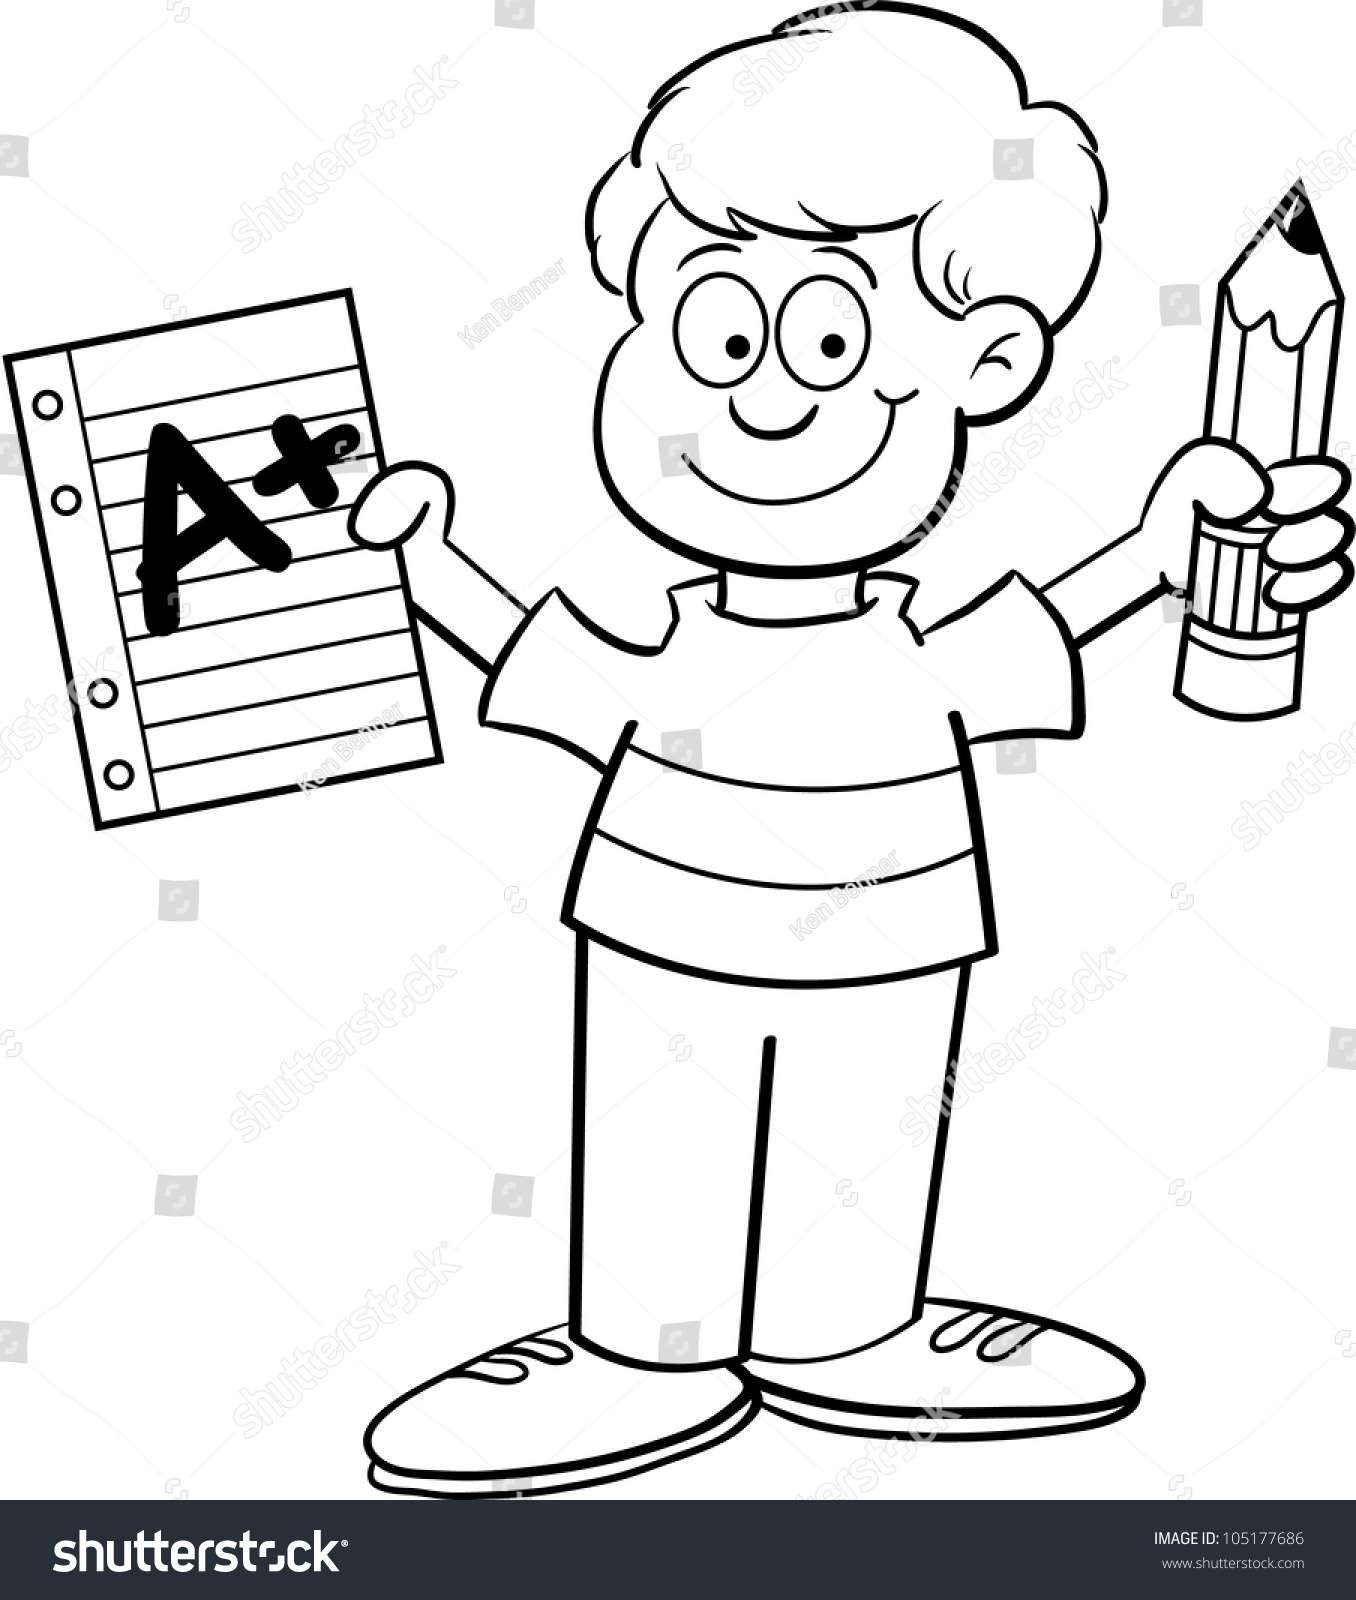 100 coloring pages pencil apple books and pencil black and